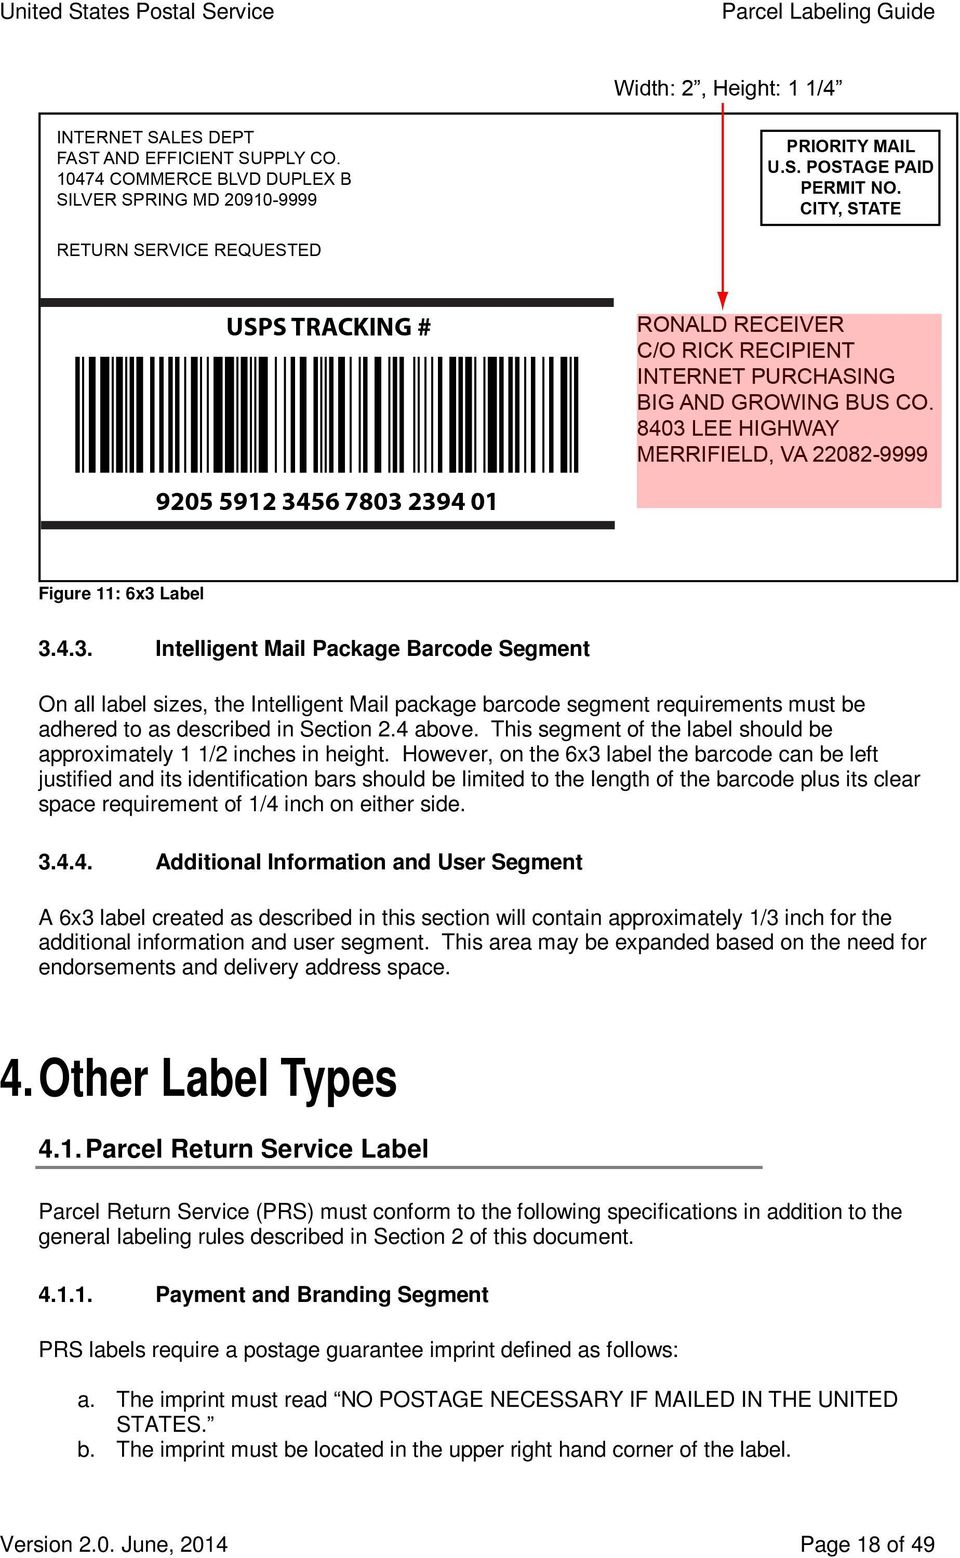 However, on the 6x3 label the barcode can be left justified and its identification bars should be limited to the length of the barcode plus its clear space requirement of 1/4